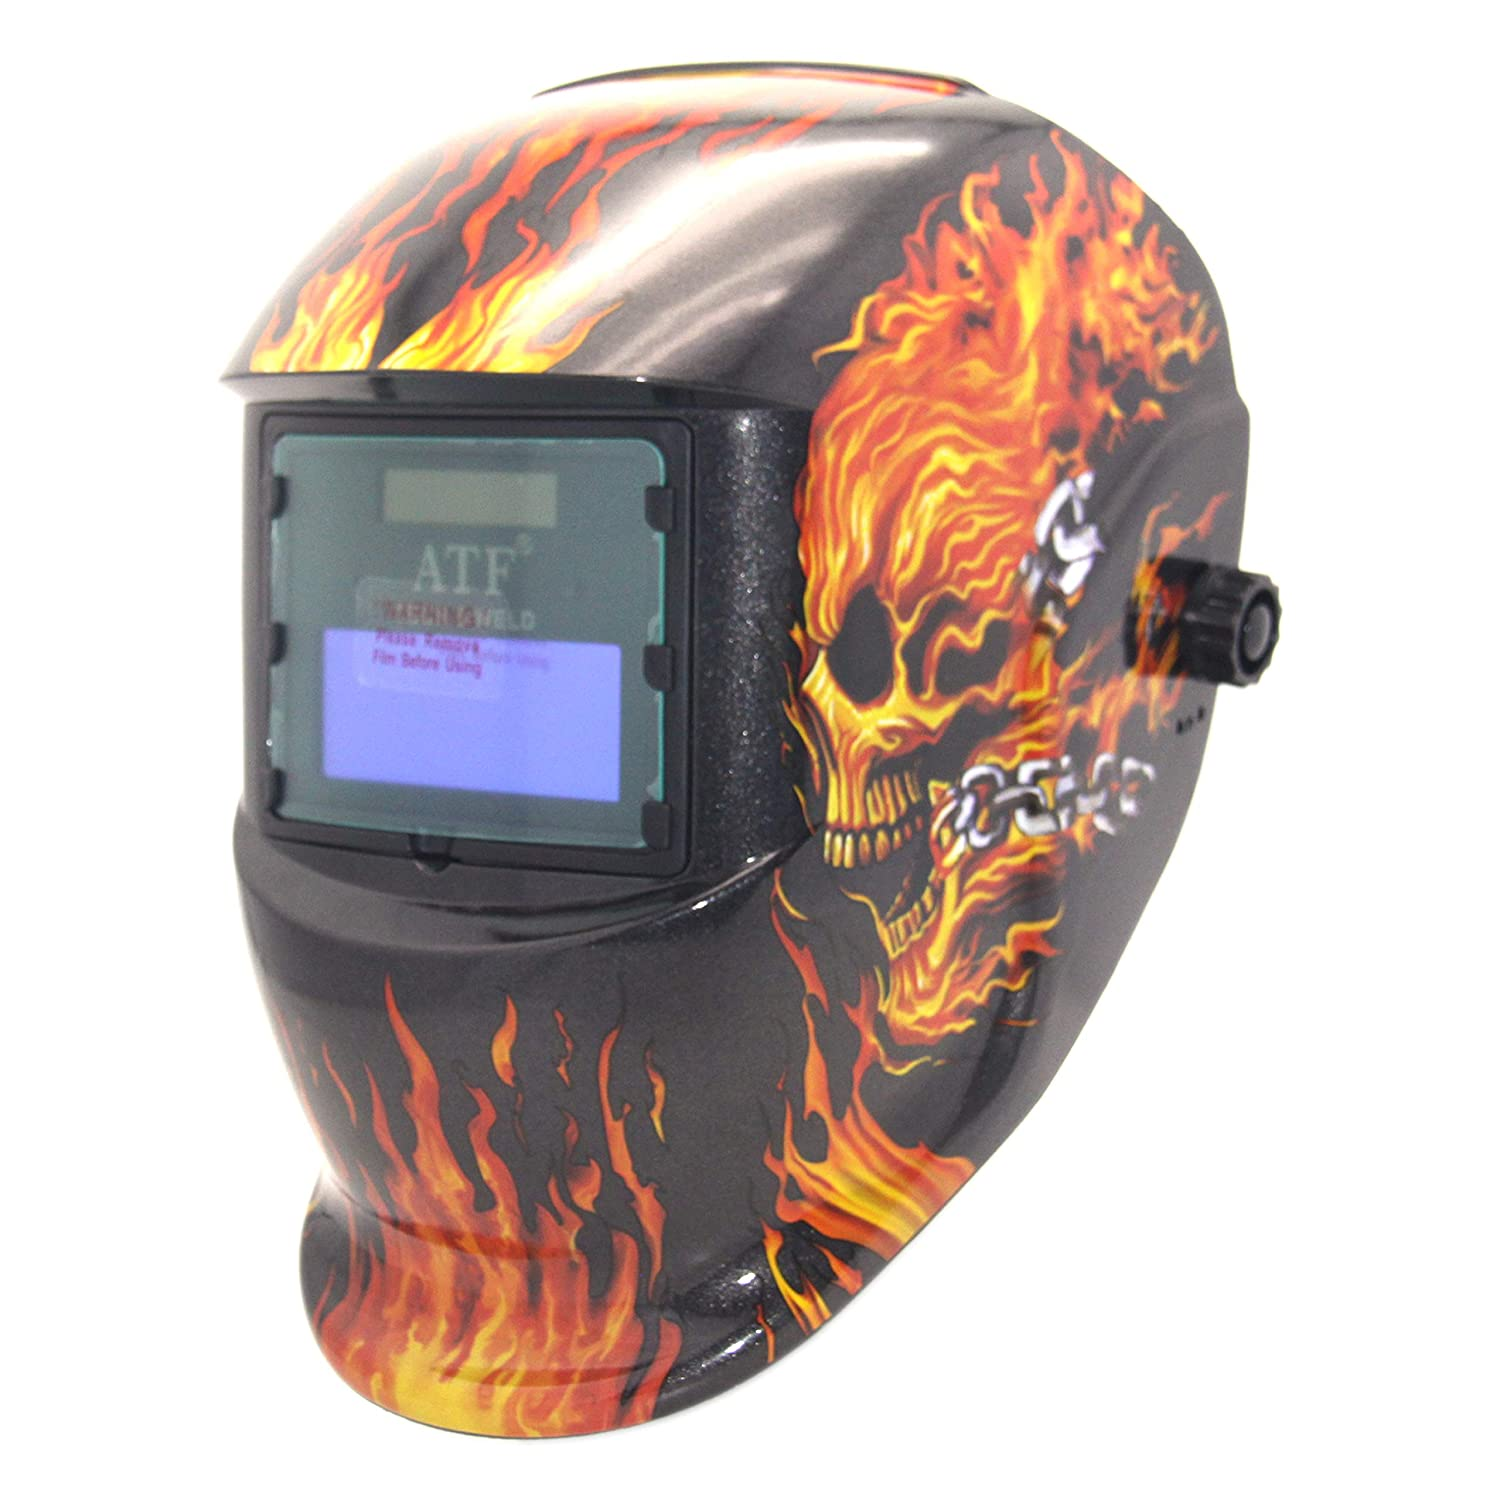 ATF Auto Darkening Welding Helmet Solar Powered Weld Hood Devil Flame for MMA TIG MIG MAG ARC Welding Optical Class 1 1 1 1 View Area. 3.54x1.39Viewing Area with 1PC Spare Cover Lens